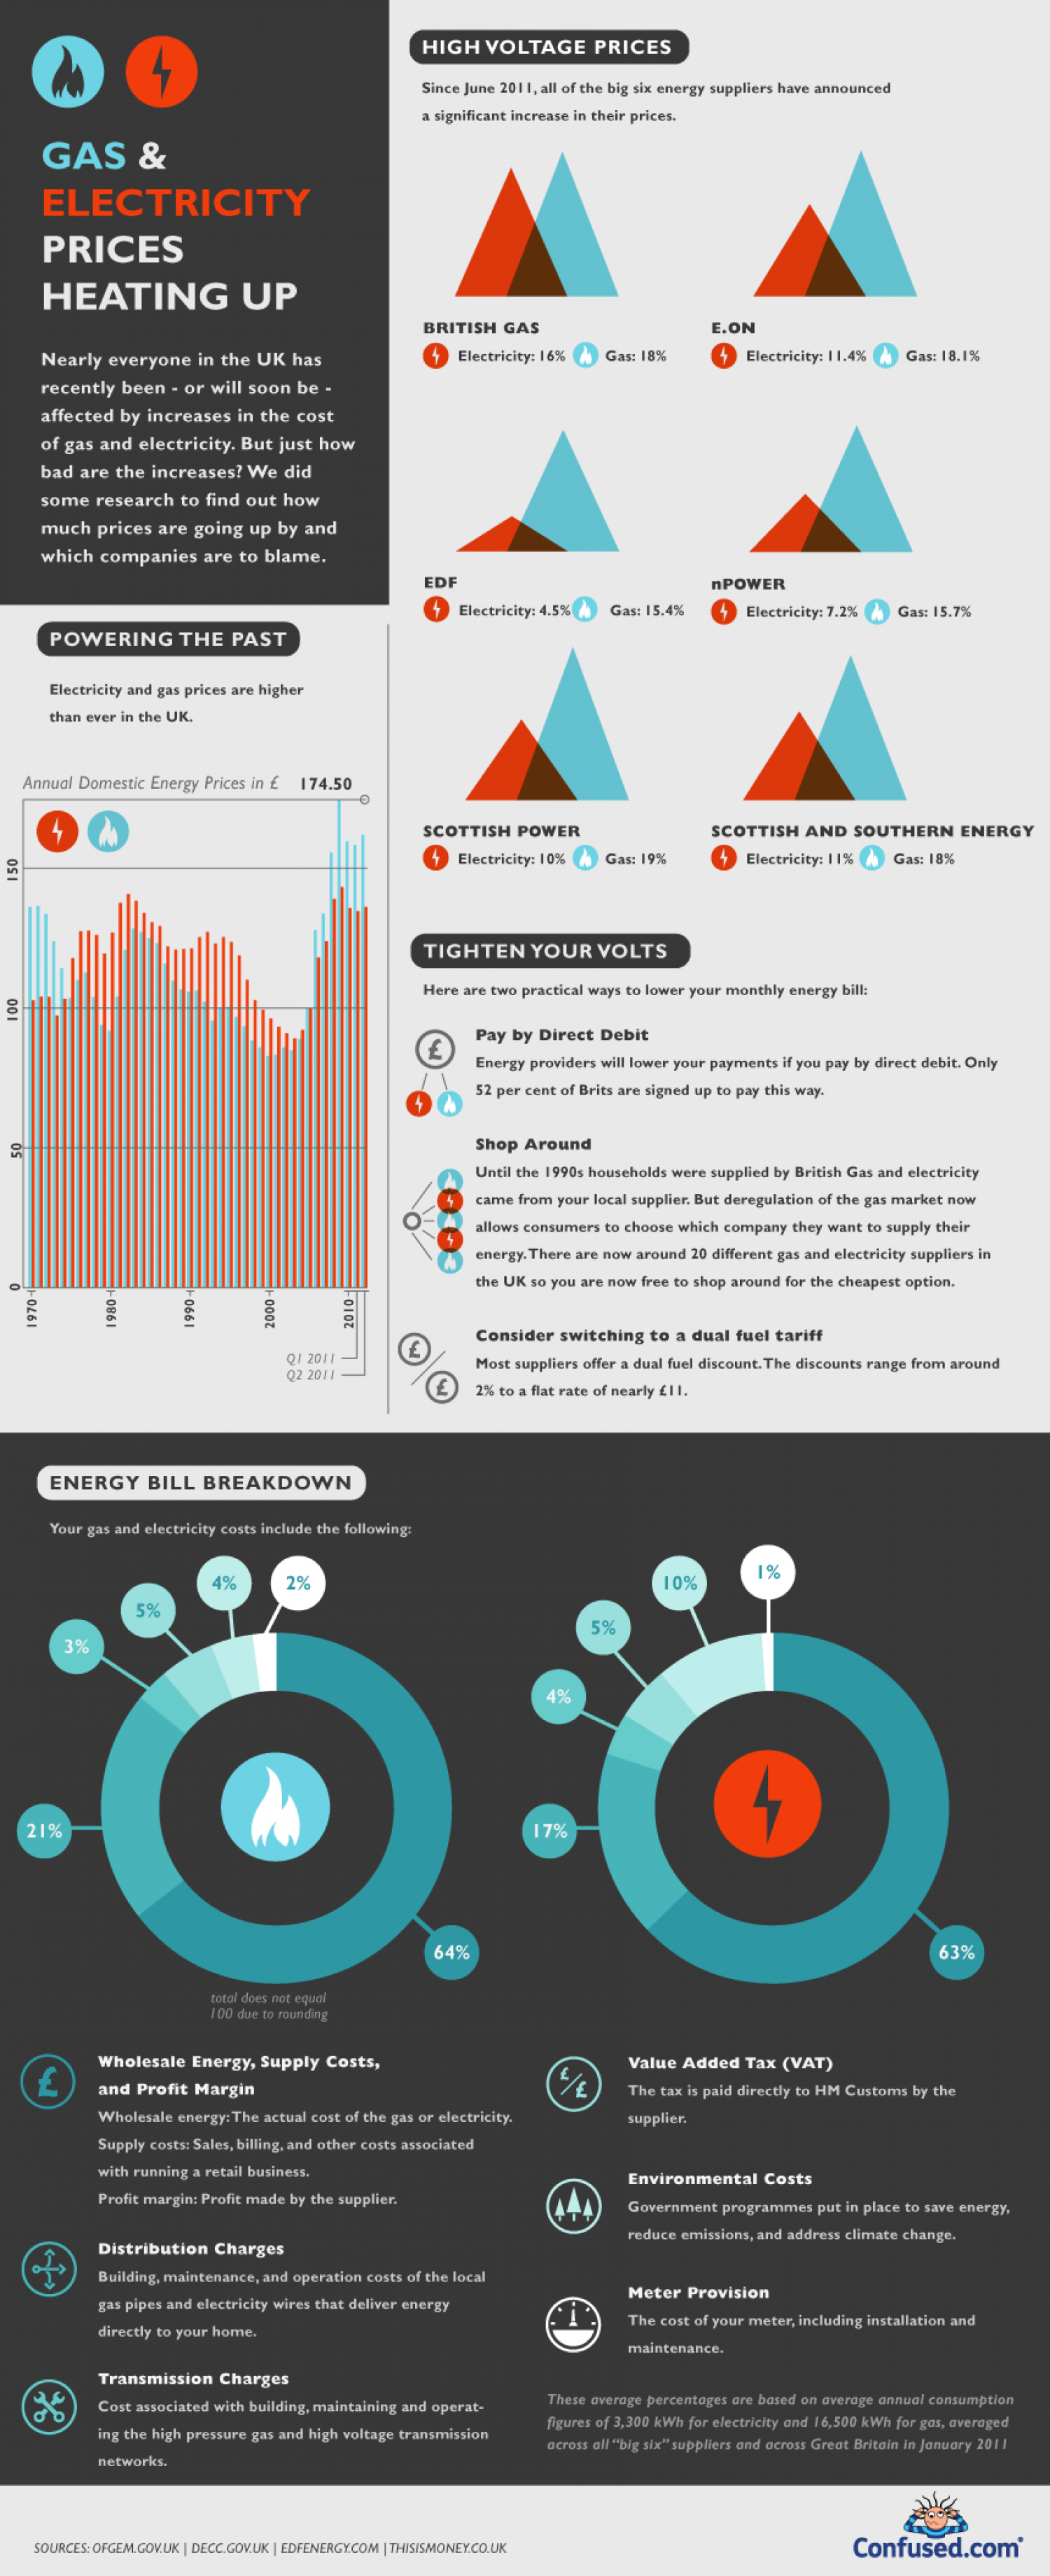 Gas & electricity prices heating up Infographic